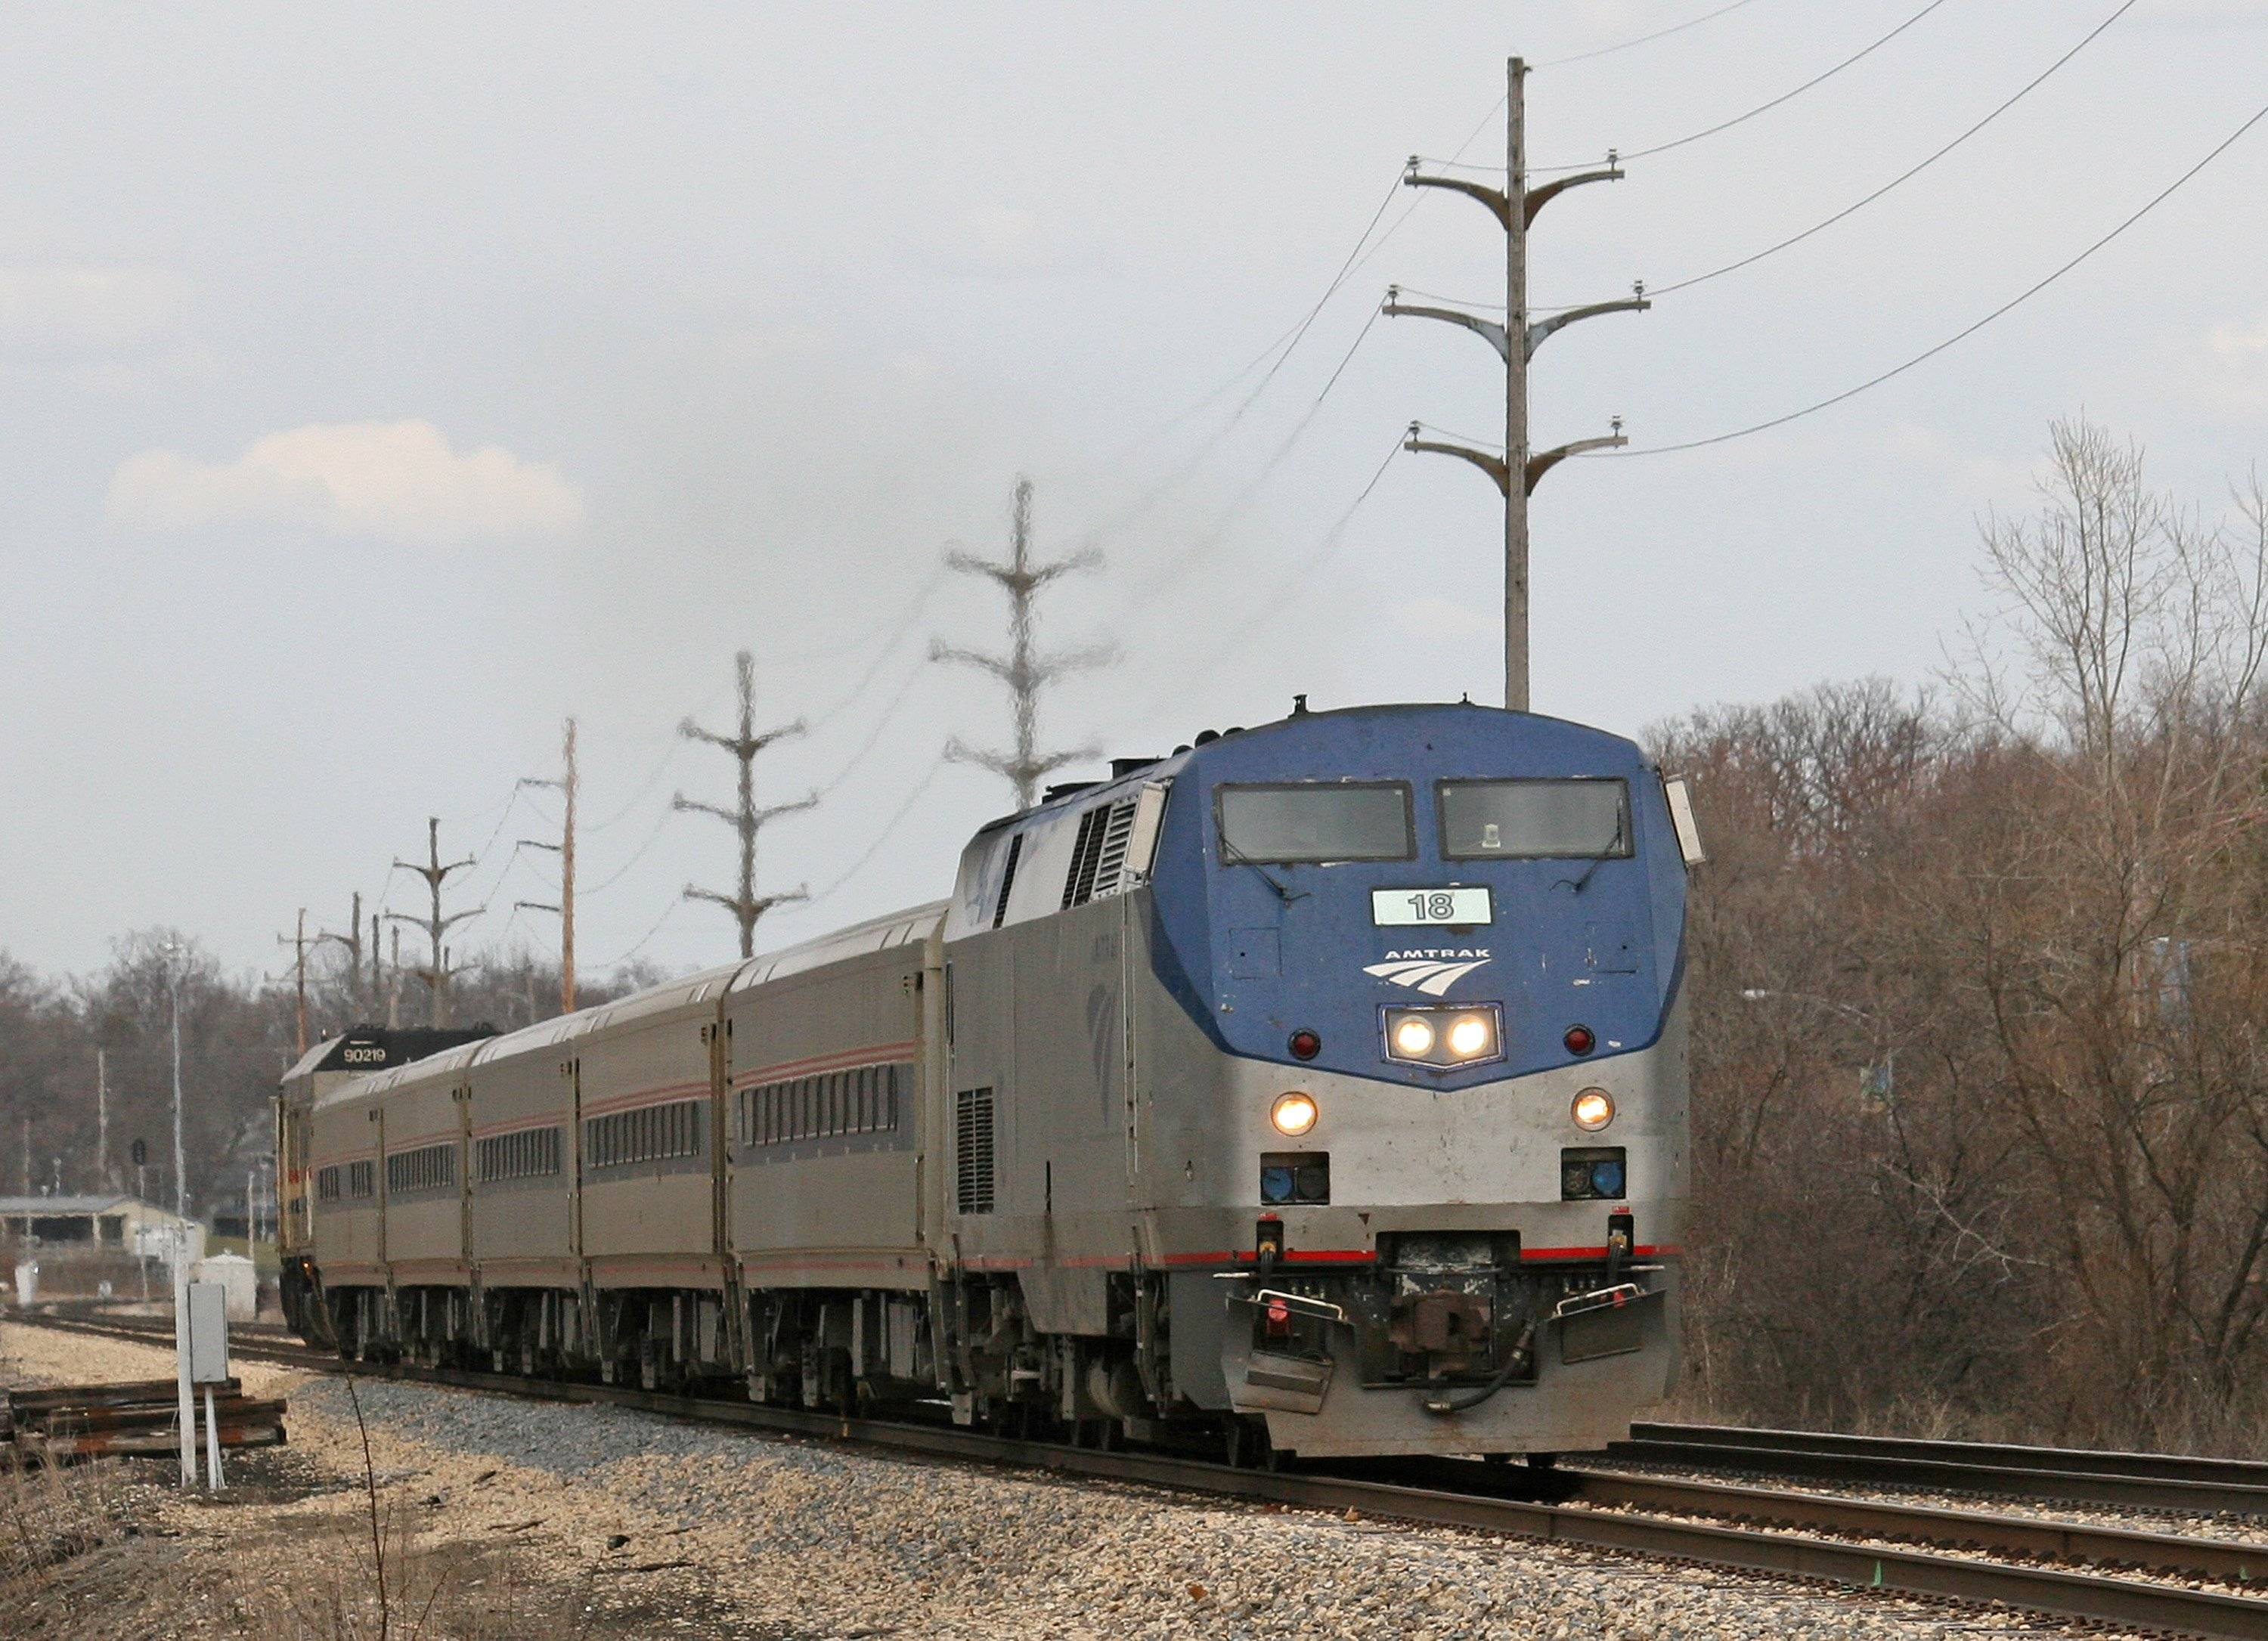 Associated Press Gov. Pat Quinn announced last week the development of Amtrak service from Chicago to Rockford. The route will include stops in Huntley and Elgin.